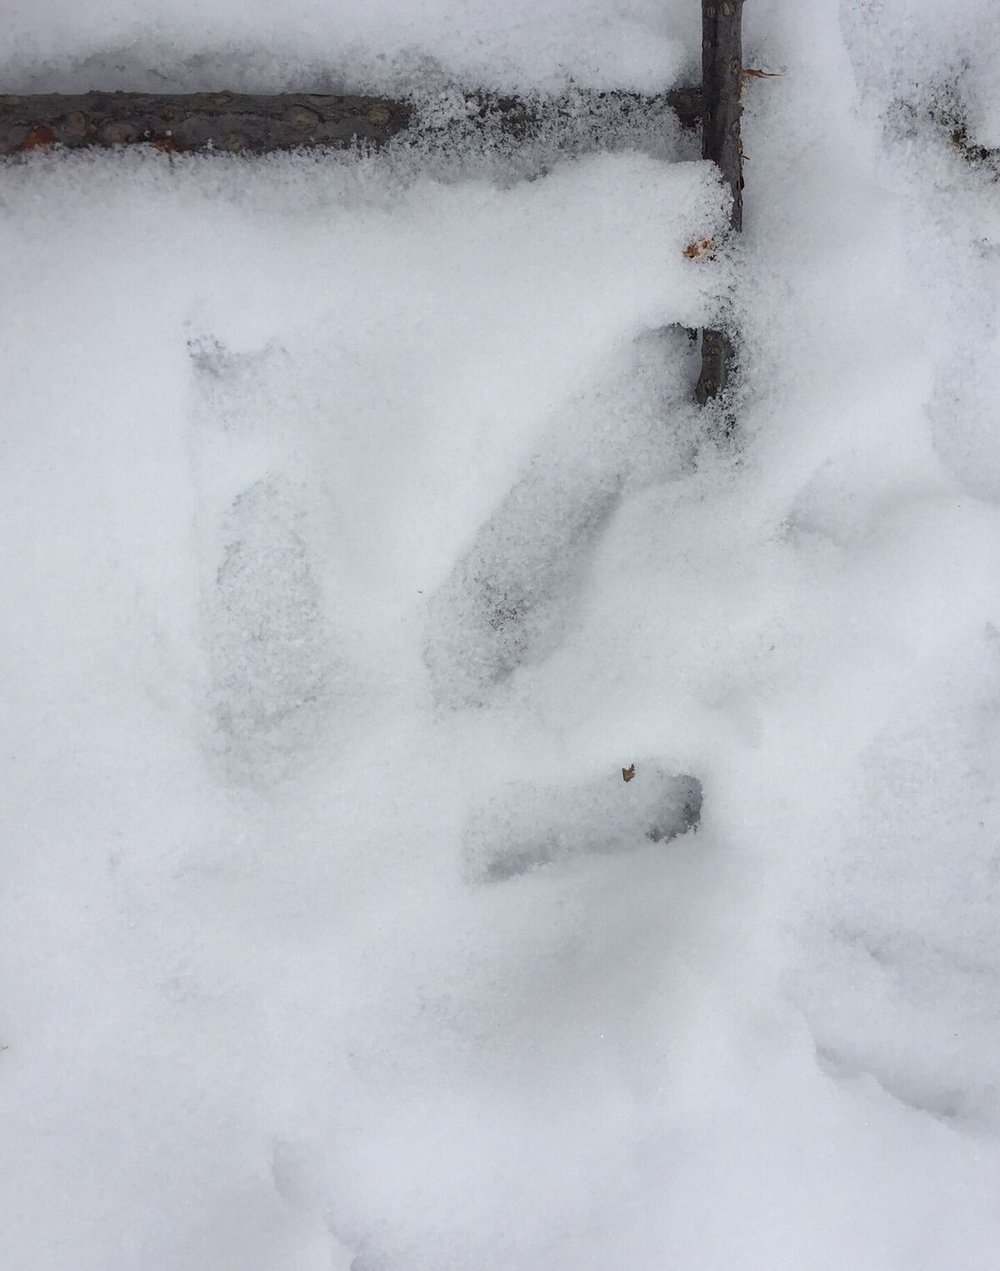 snow-tracks_preview.jpeg.jpg